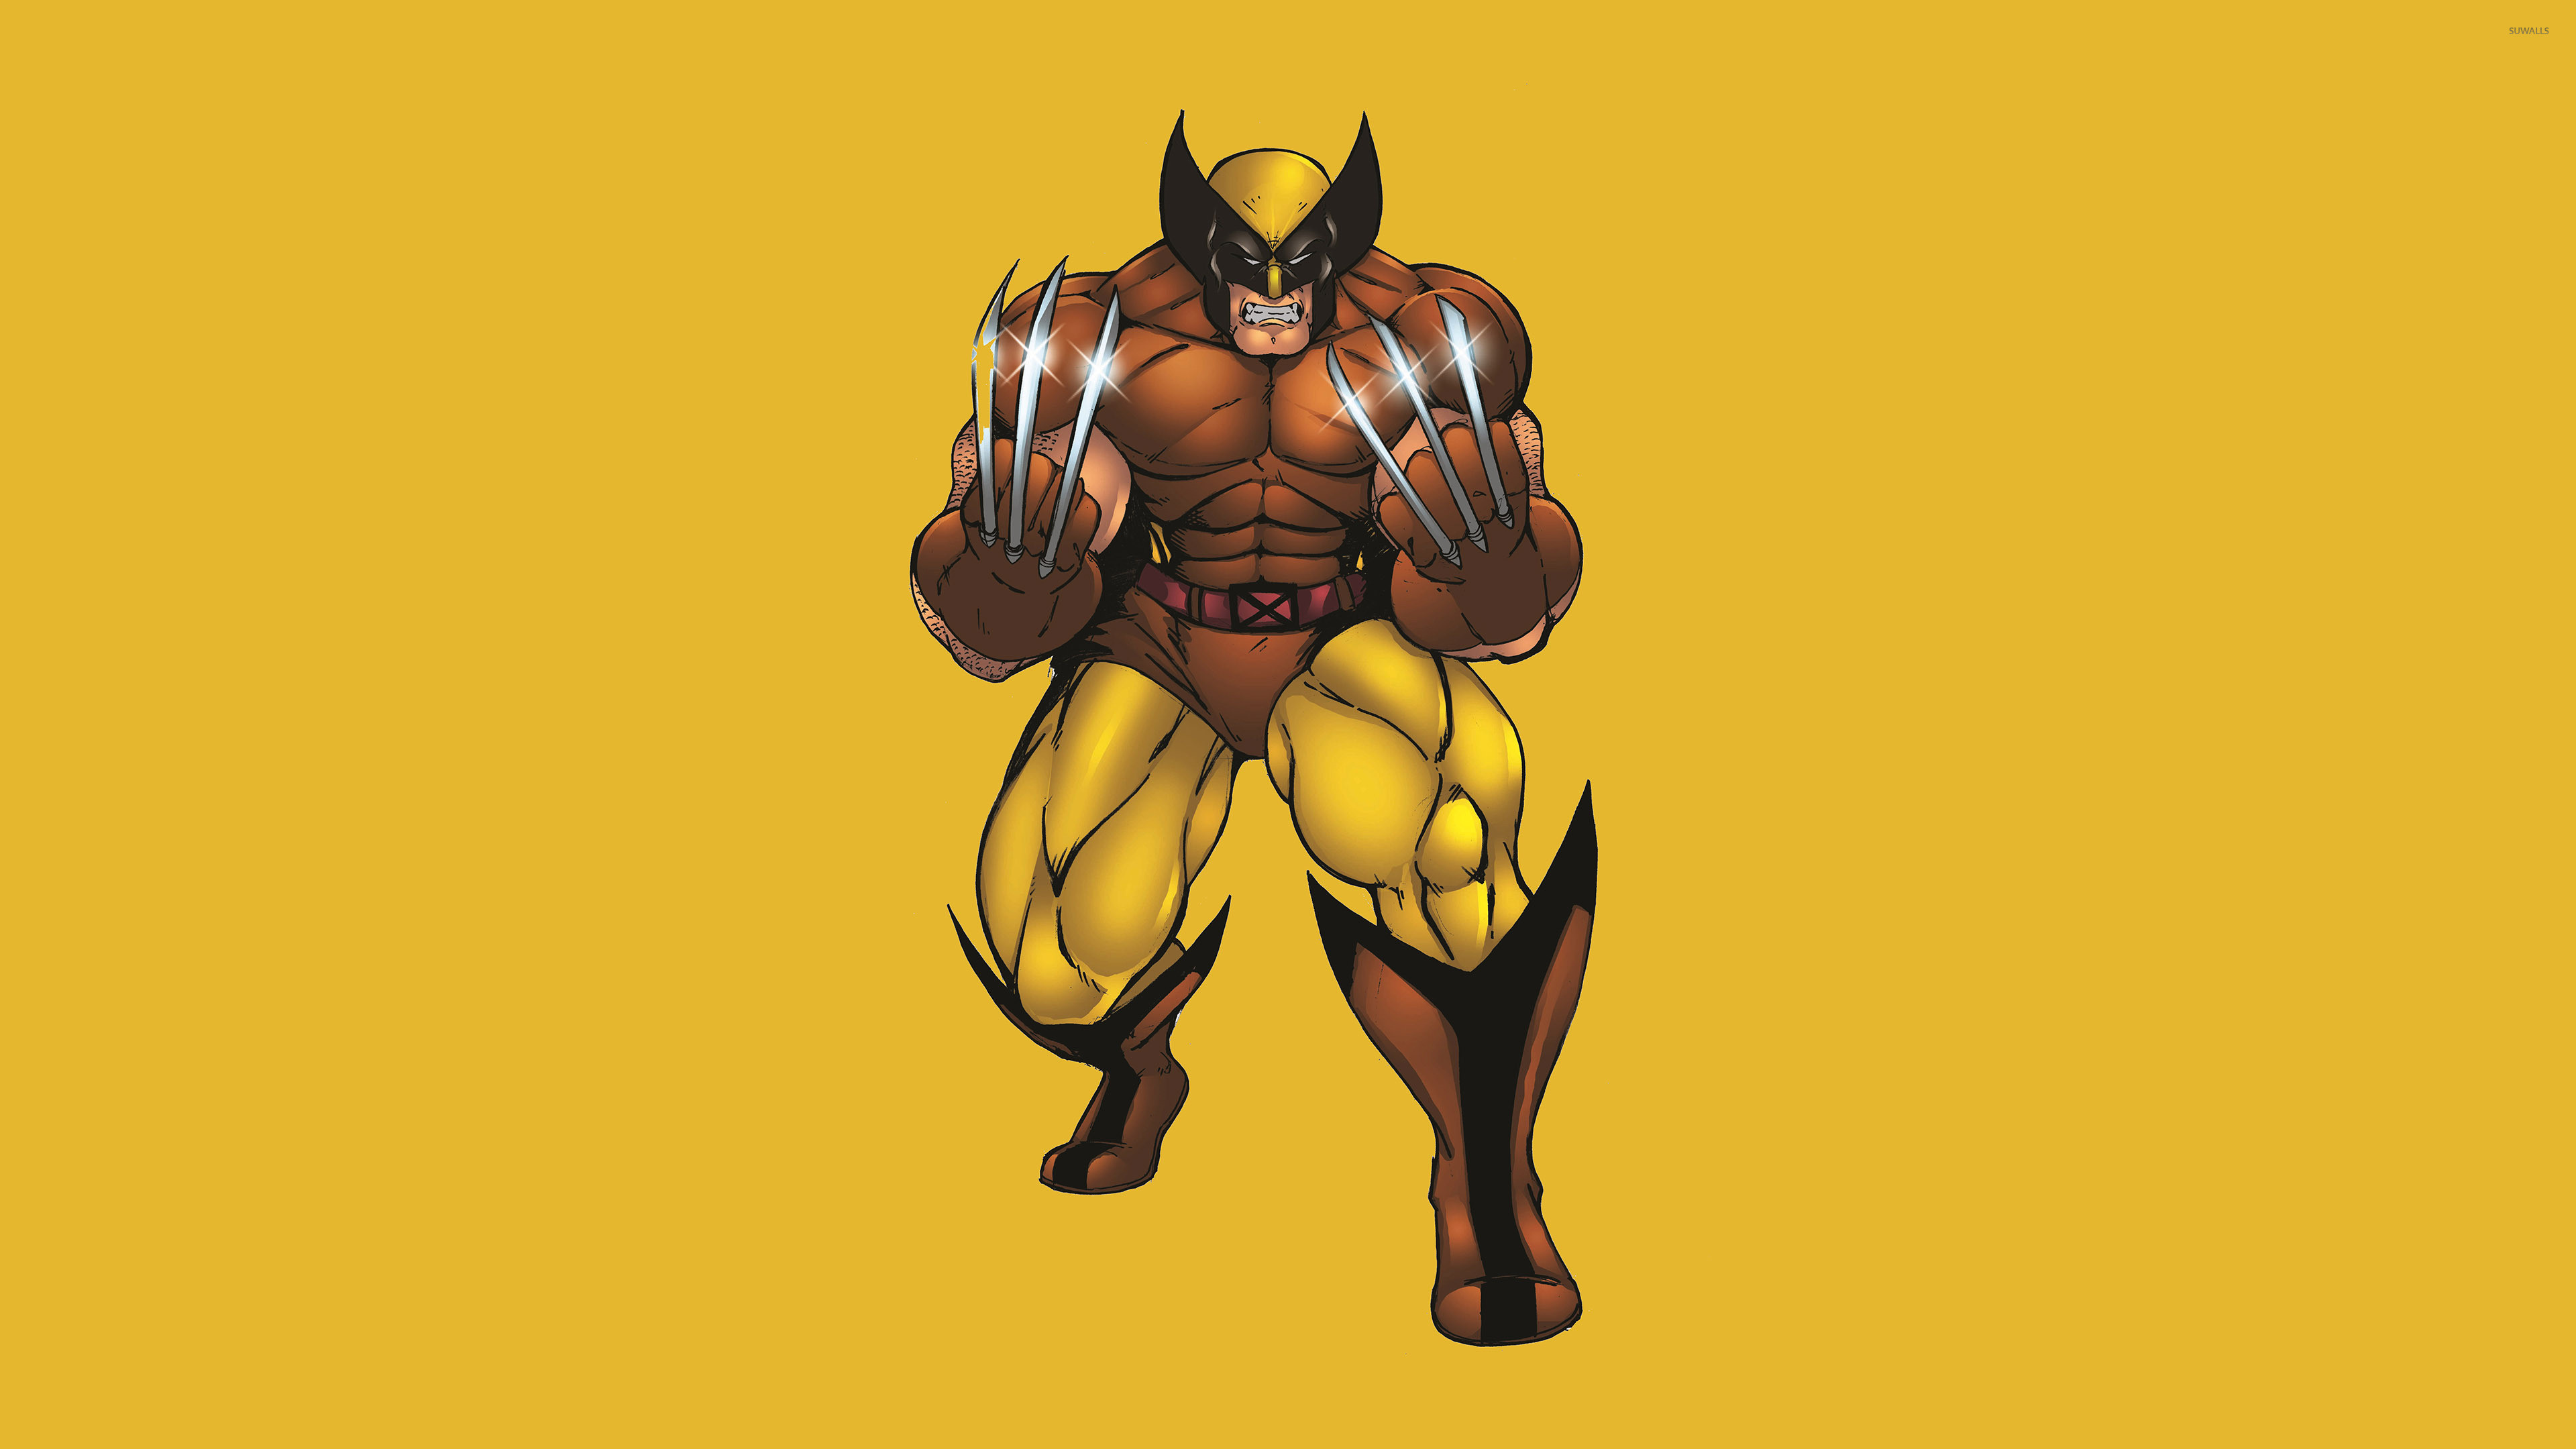 Res: 3840x2160, Wolverine with silver claws wallpaper